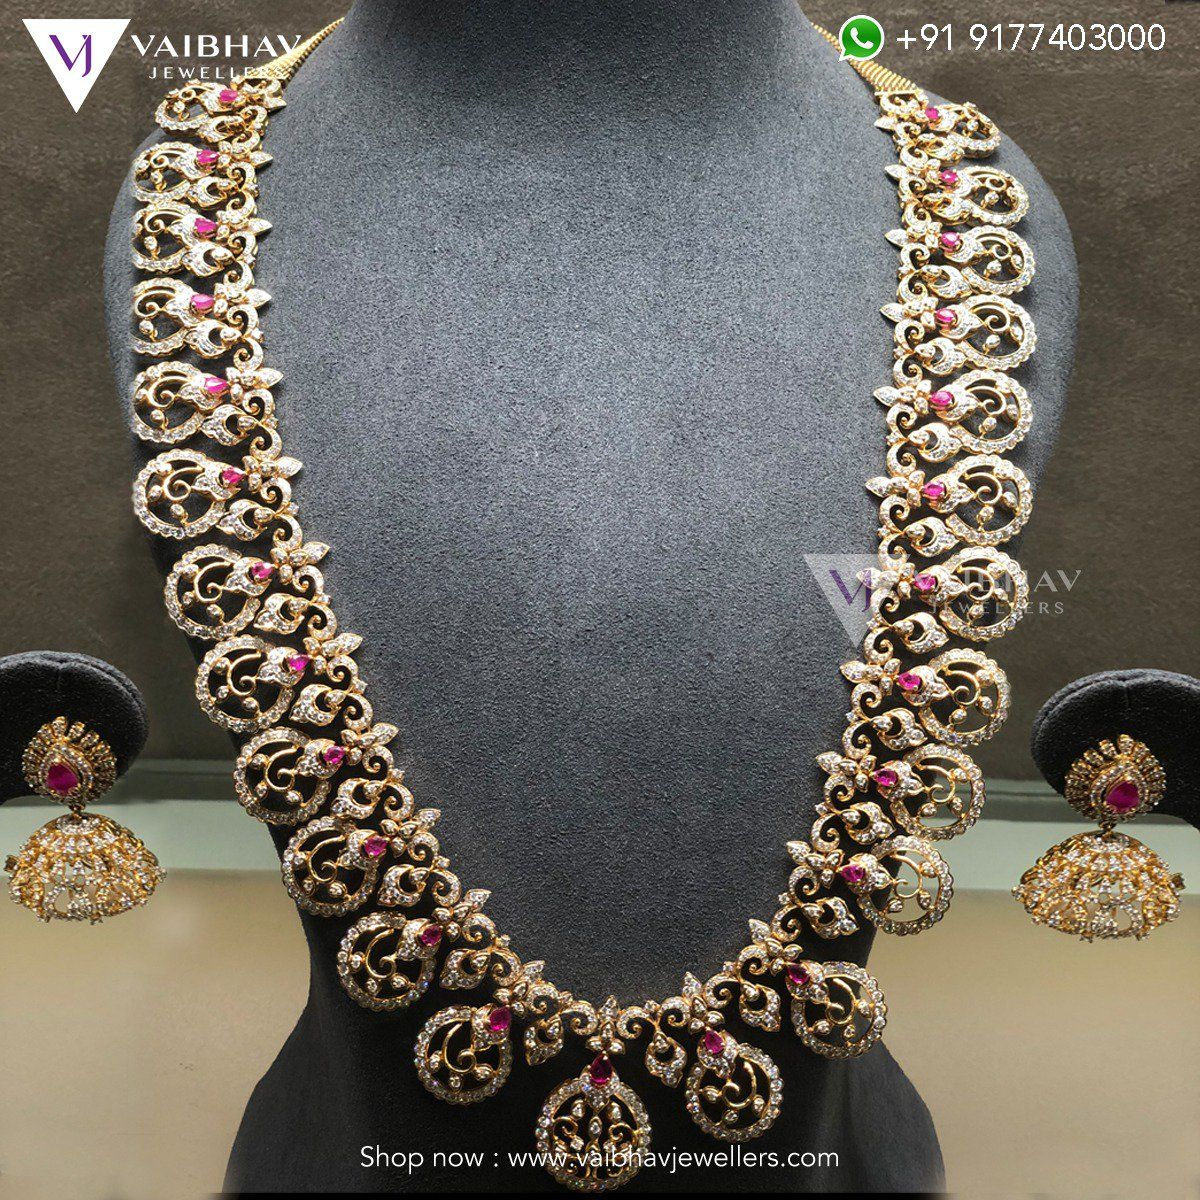 fea0c1a127284 Diamond Haram Collection by Vaibhav Jewellers photo   Jewellery ...